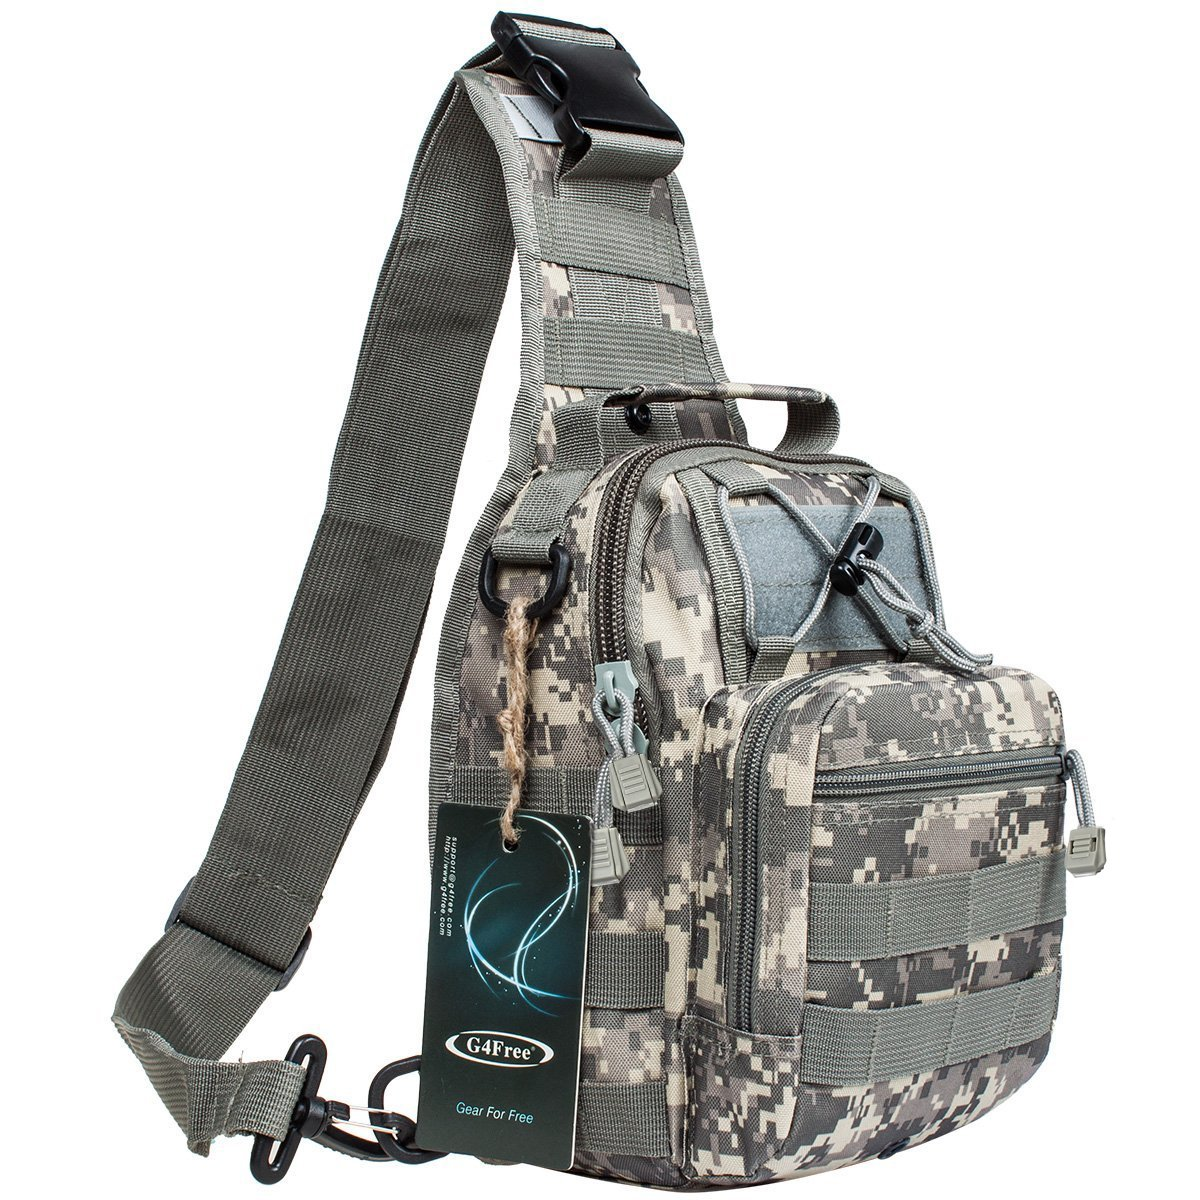 Amazon.com : G4Free Outdoor Tactical Backpack, Military Sport Pack ...